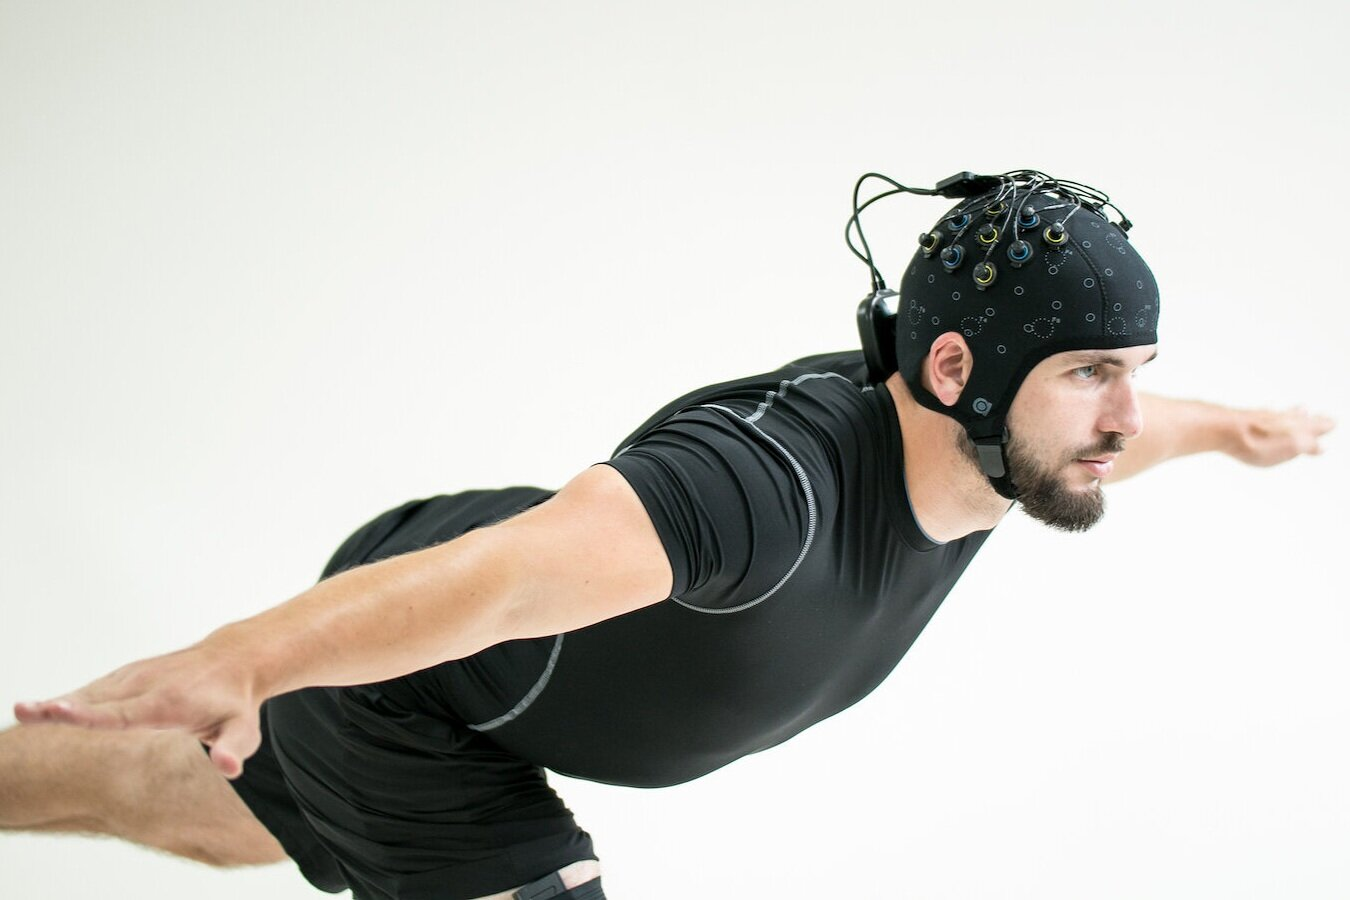 Brite - Truly wearable fNIRS device